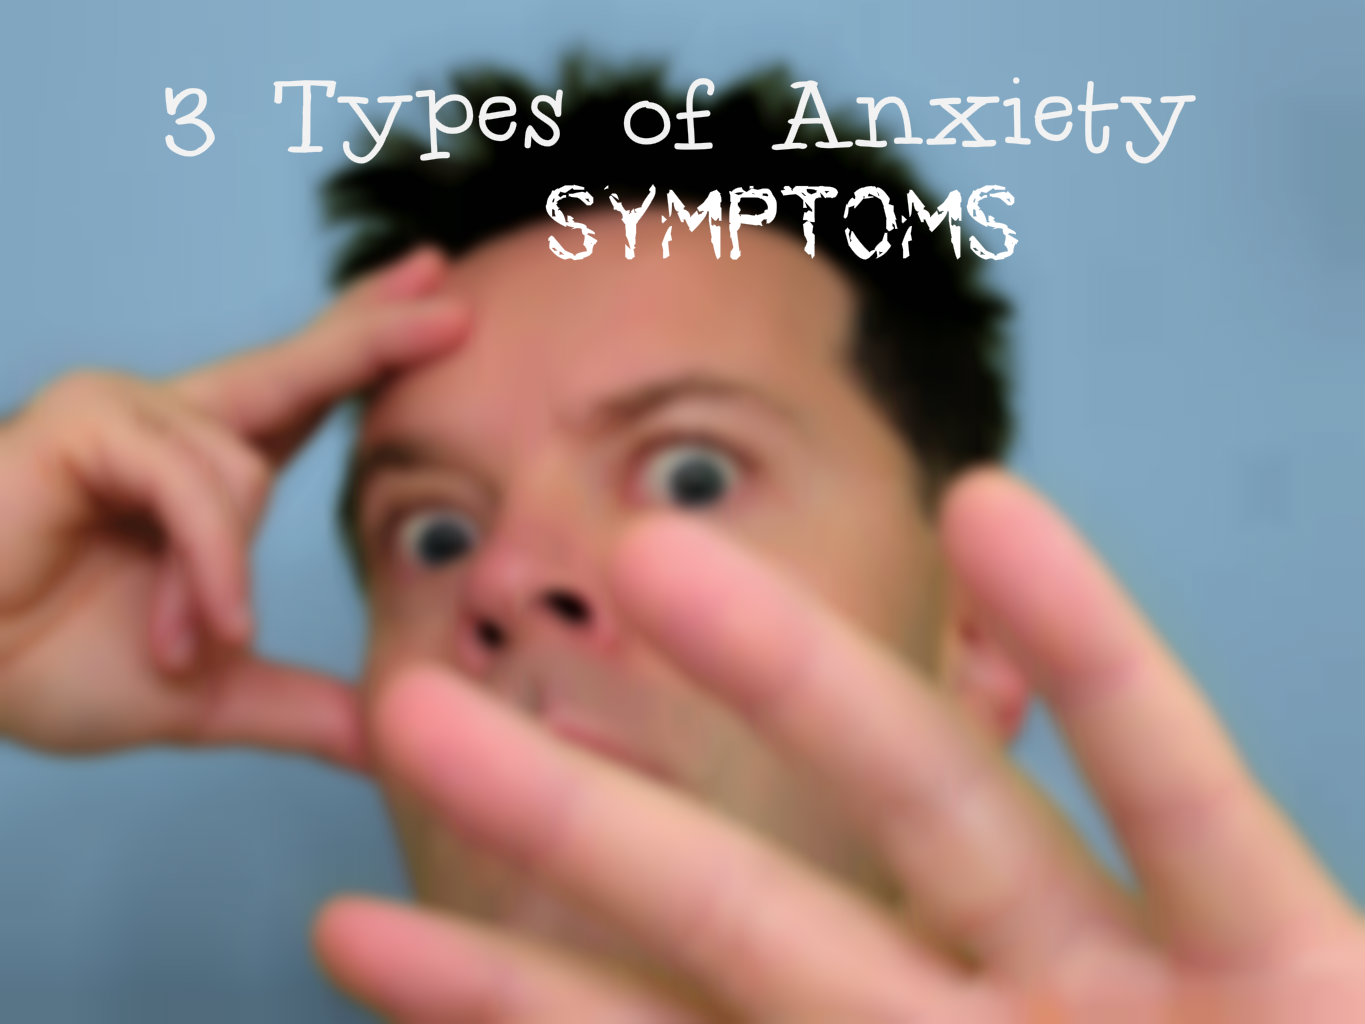 3 types of anxiety symptoms, anxious man